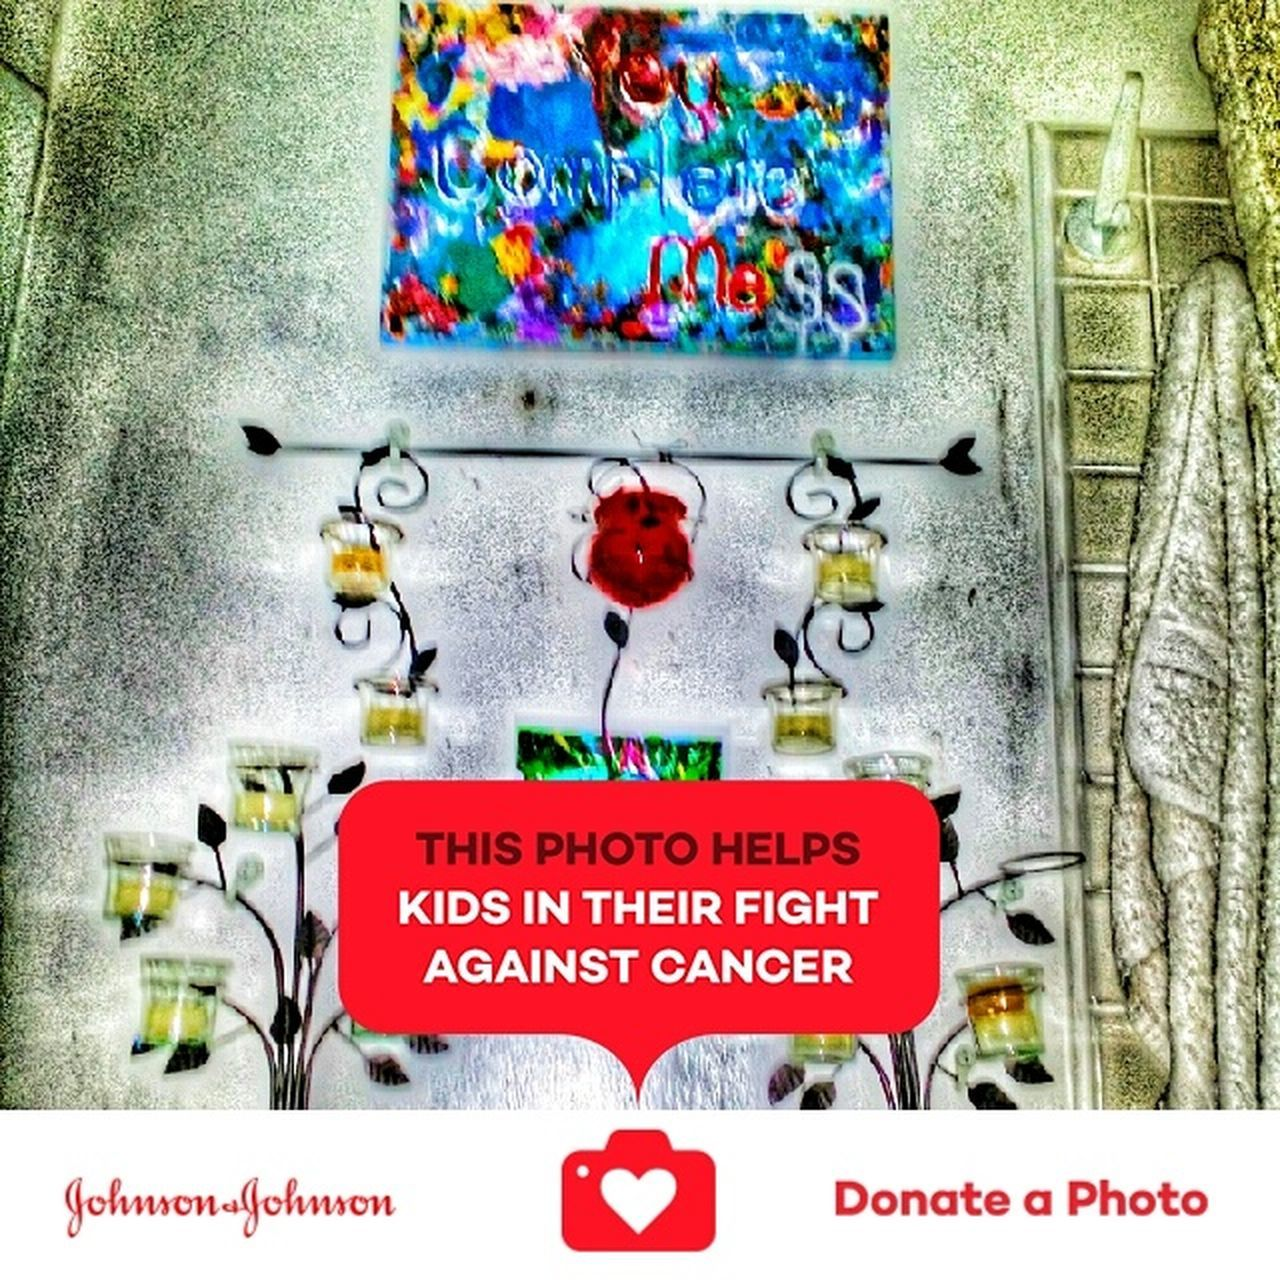 The Journey Is The Destination Donation Drive Adopt To Save A Life Donate J&j To Better Lives Special Effects Donation To Better Life Make A Smile Donate Donation = Sharing Light It By Candle